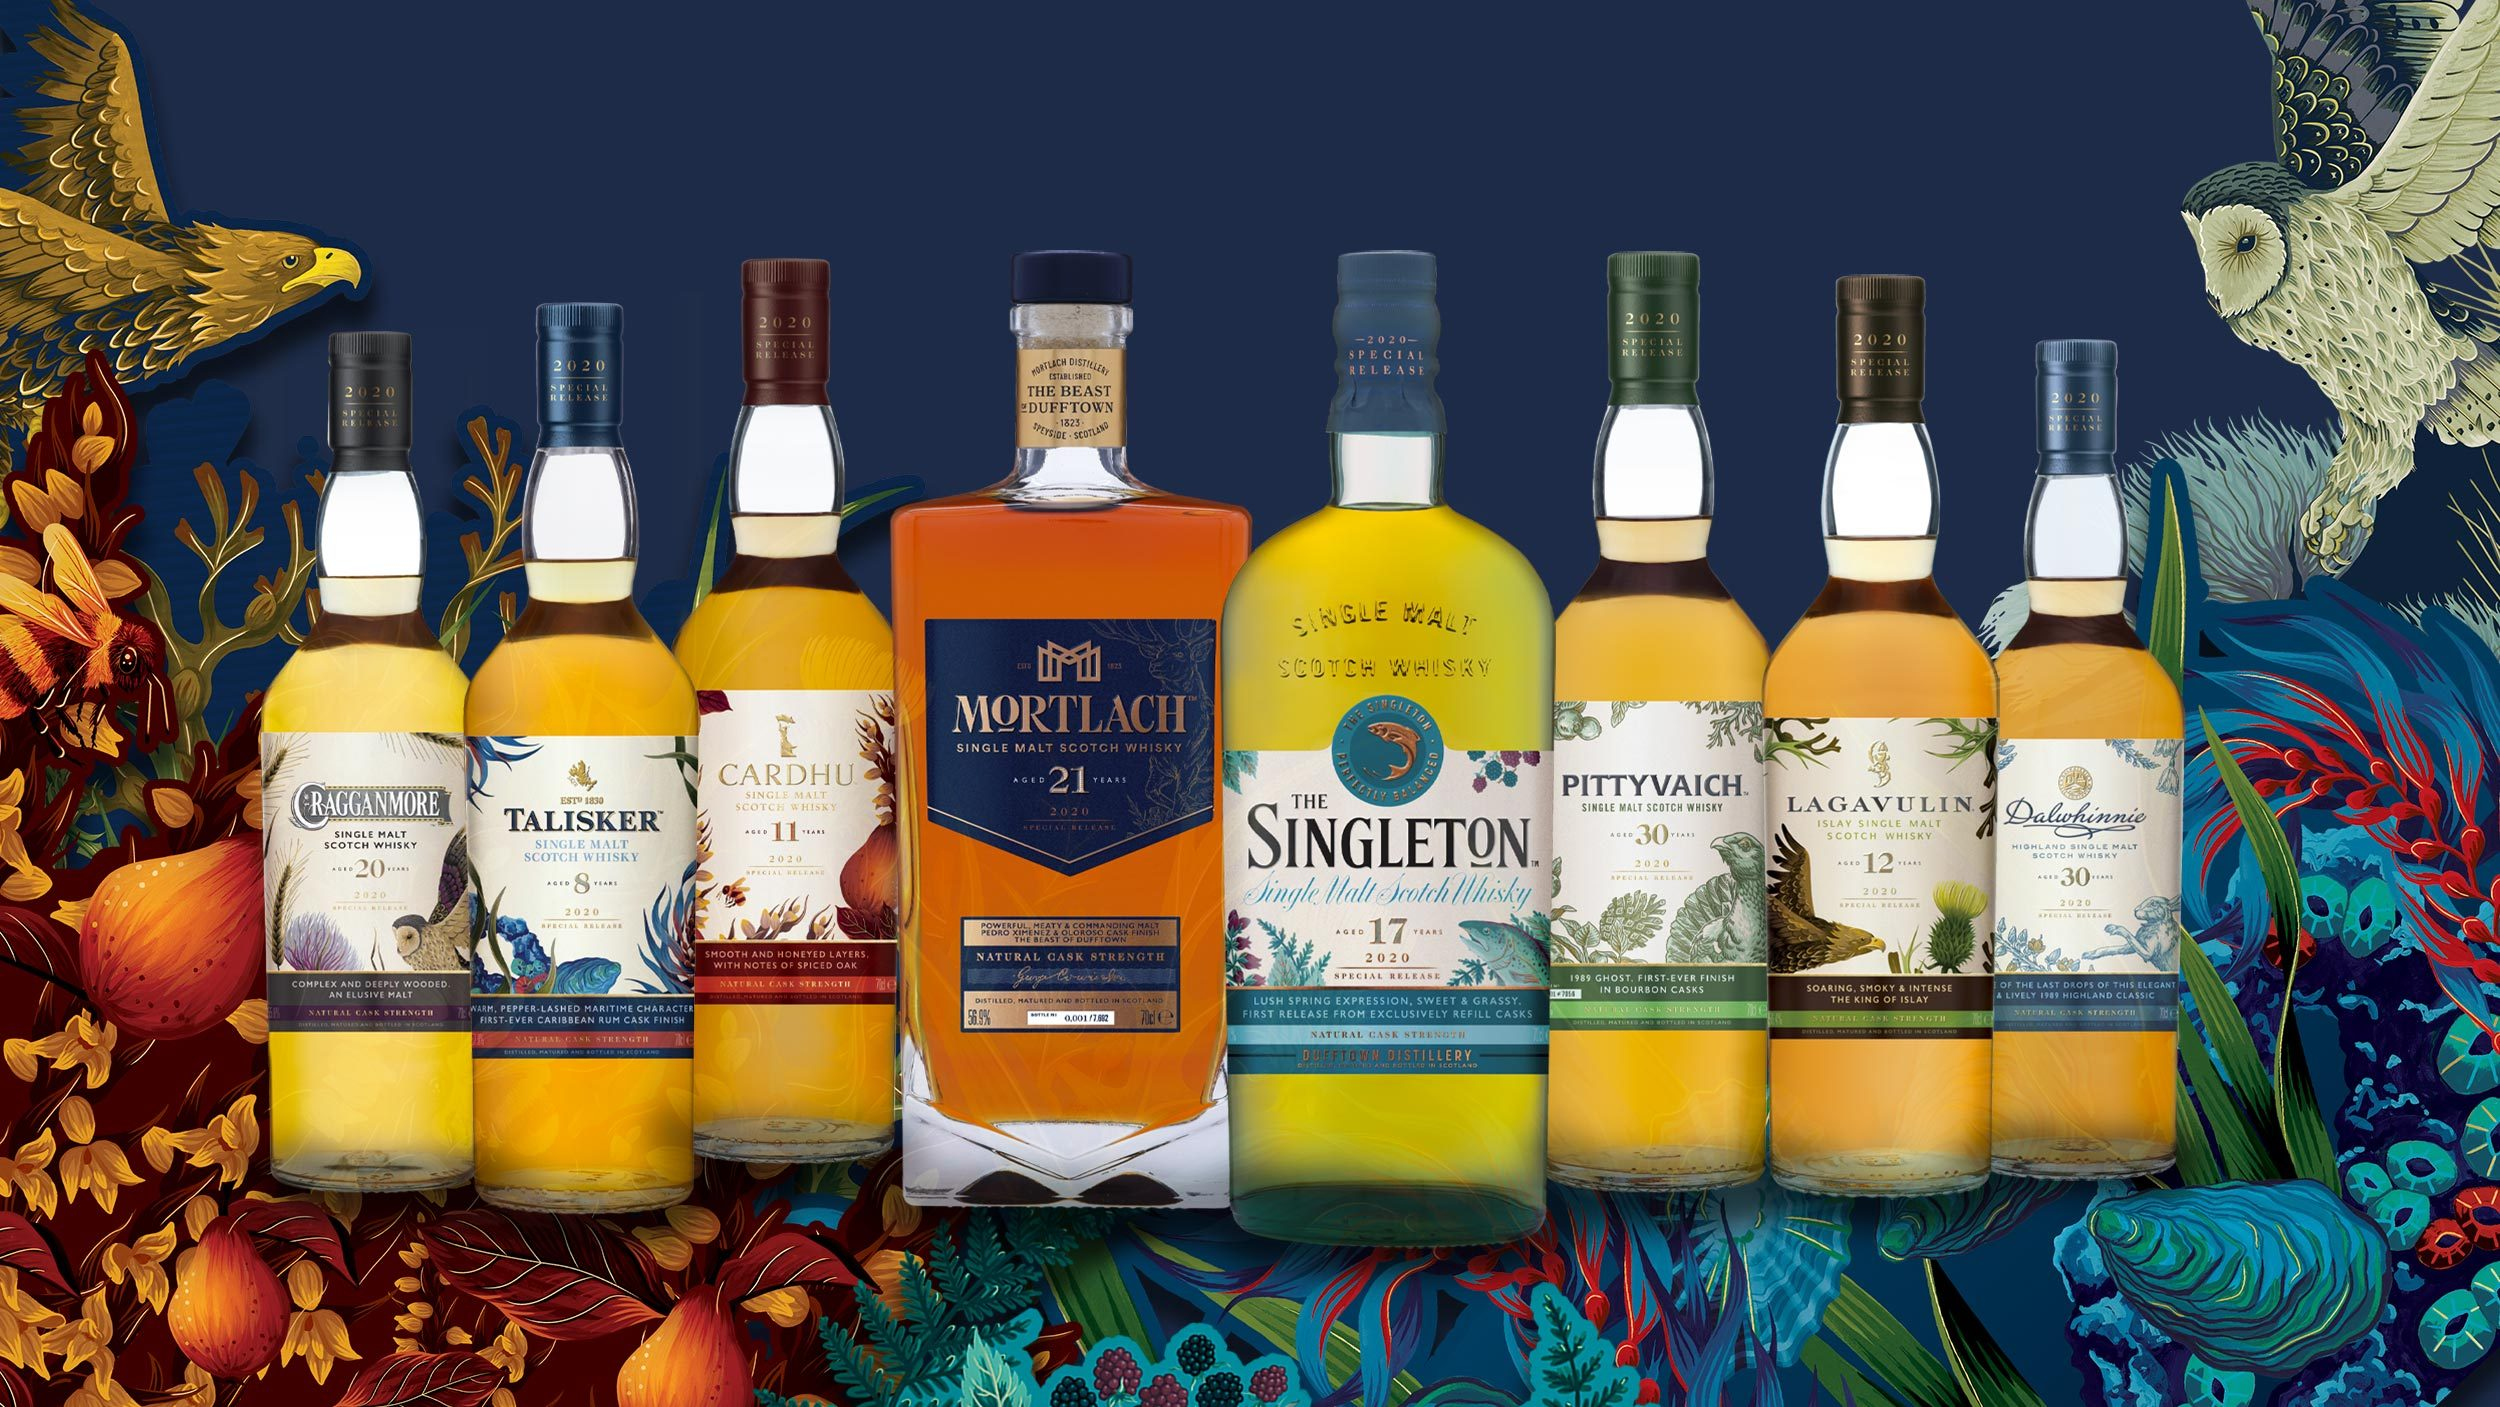 Diageo 2020 Special Releases: Rare by Nature